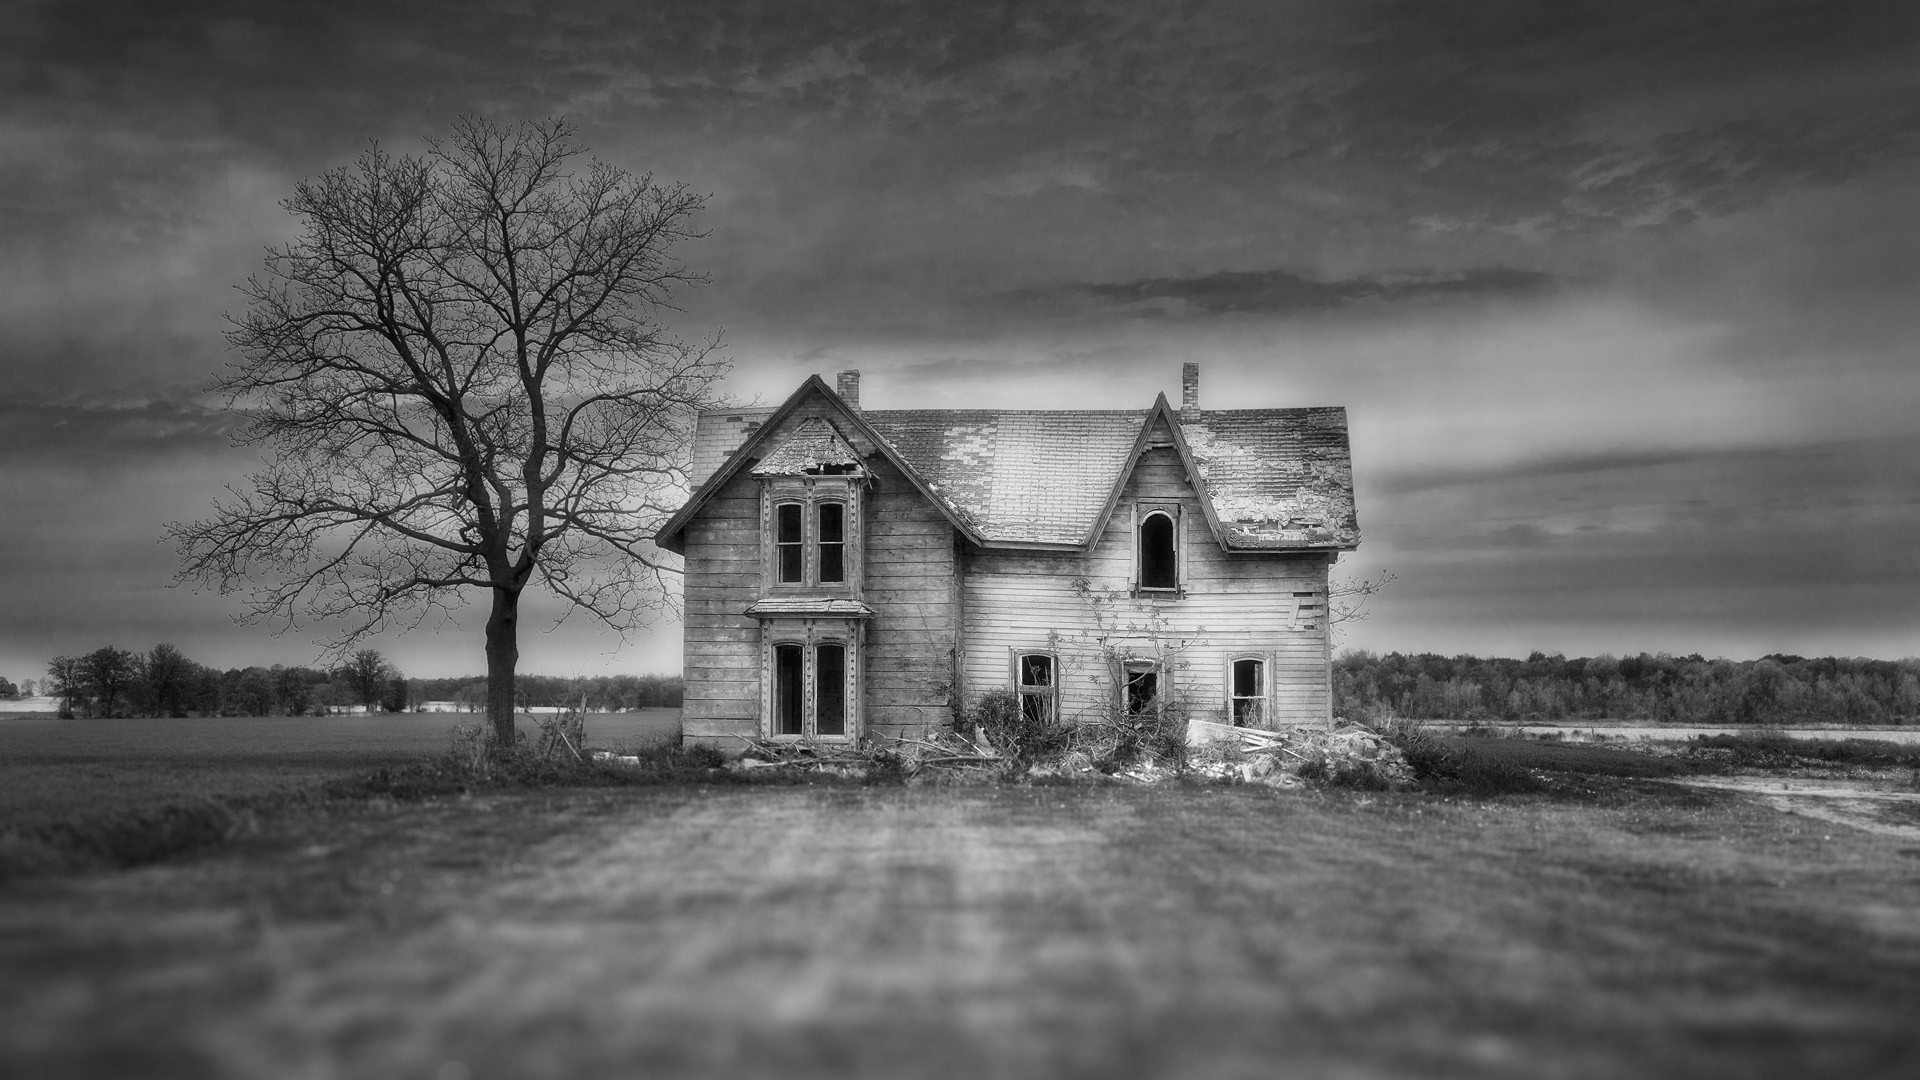 Haunted house in focus wallpaper 16640 for Best house wallpaper